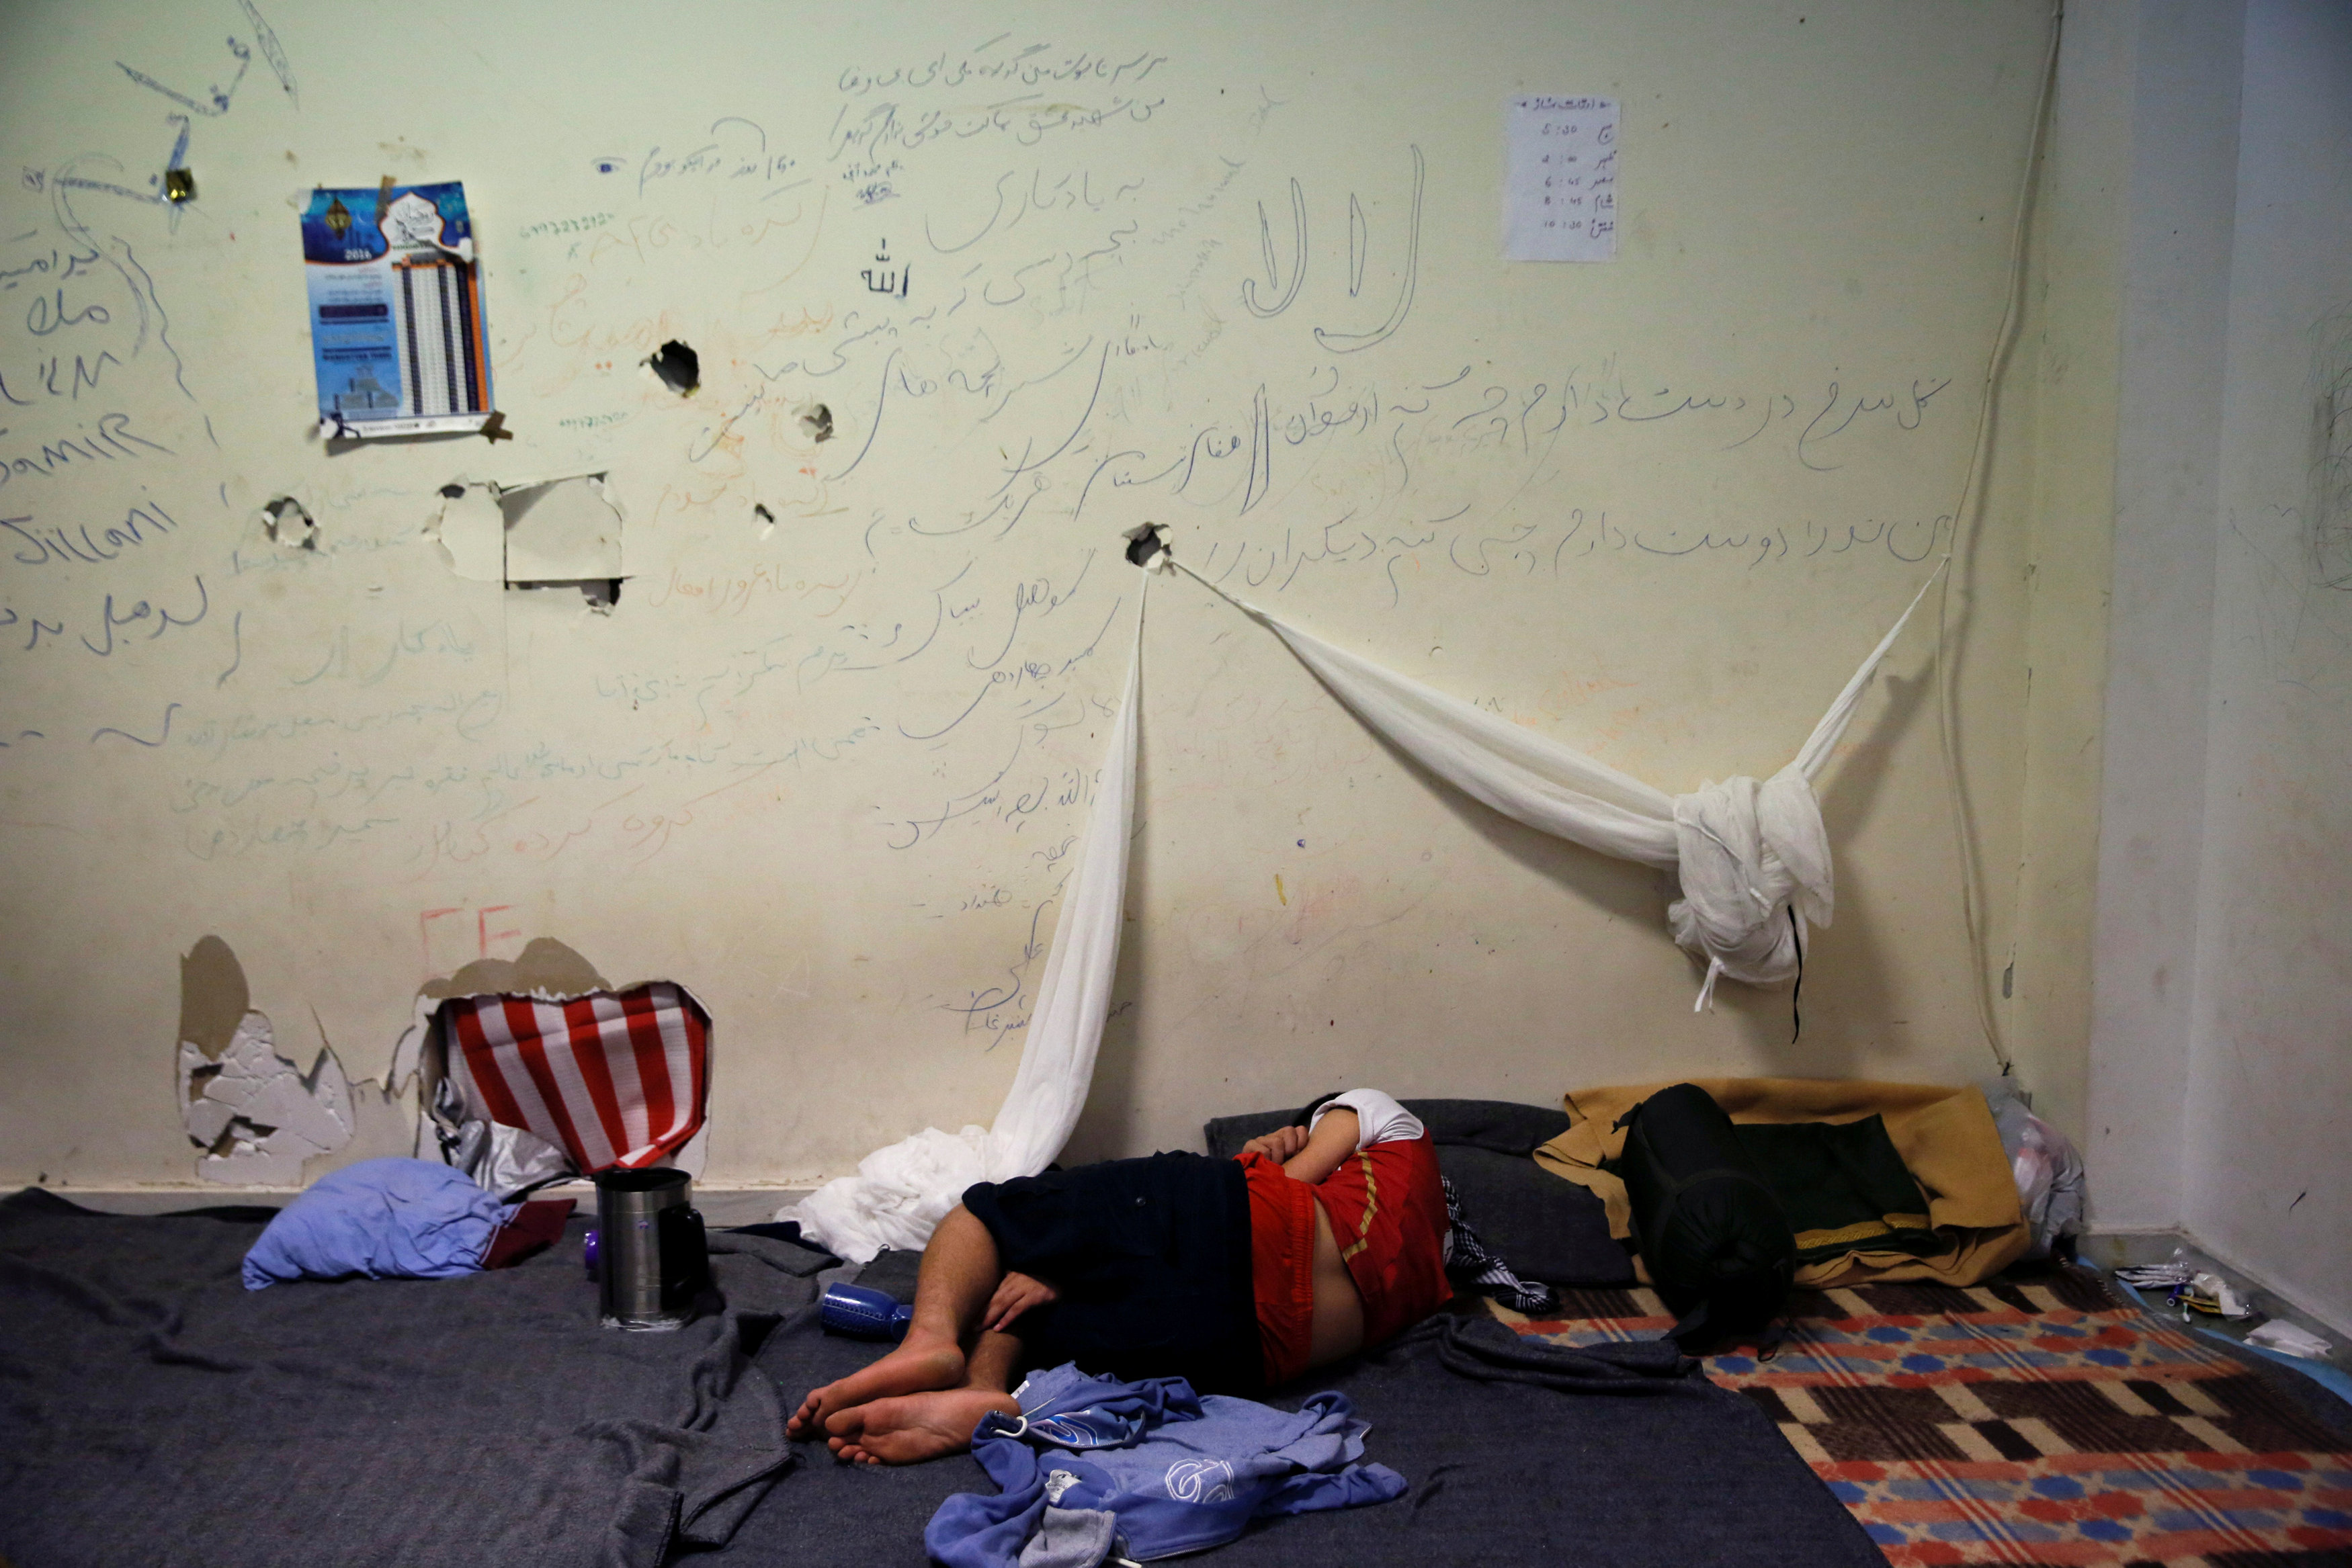 A boy sleeps inside the disused Hellenikon airport where refugees and migrants are temporarily housed in Athens, Greece July 13, 2016. Credit: Alkis Konstantinidis/Files